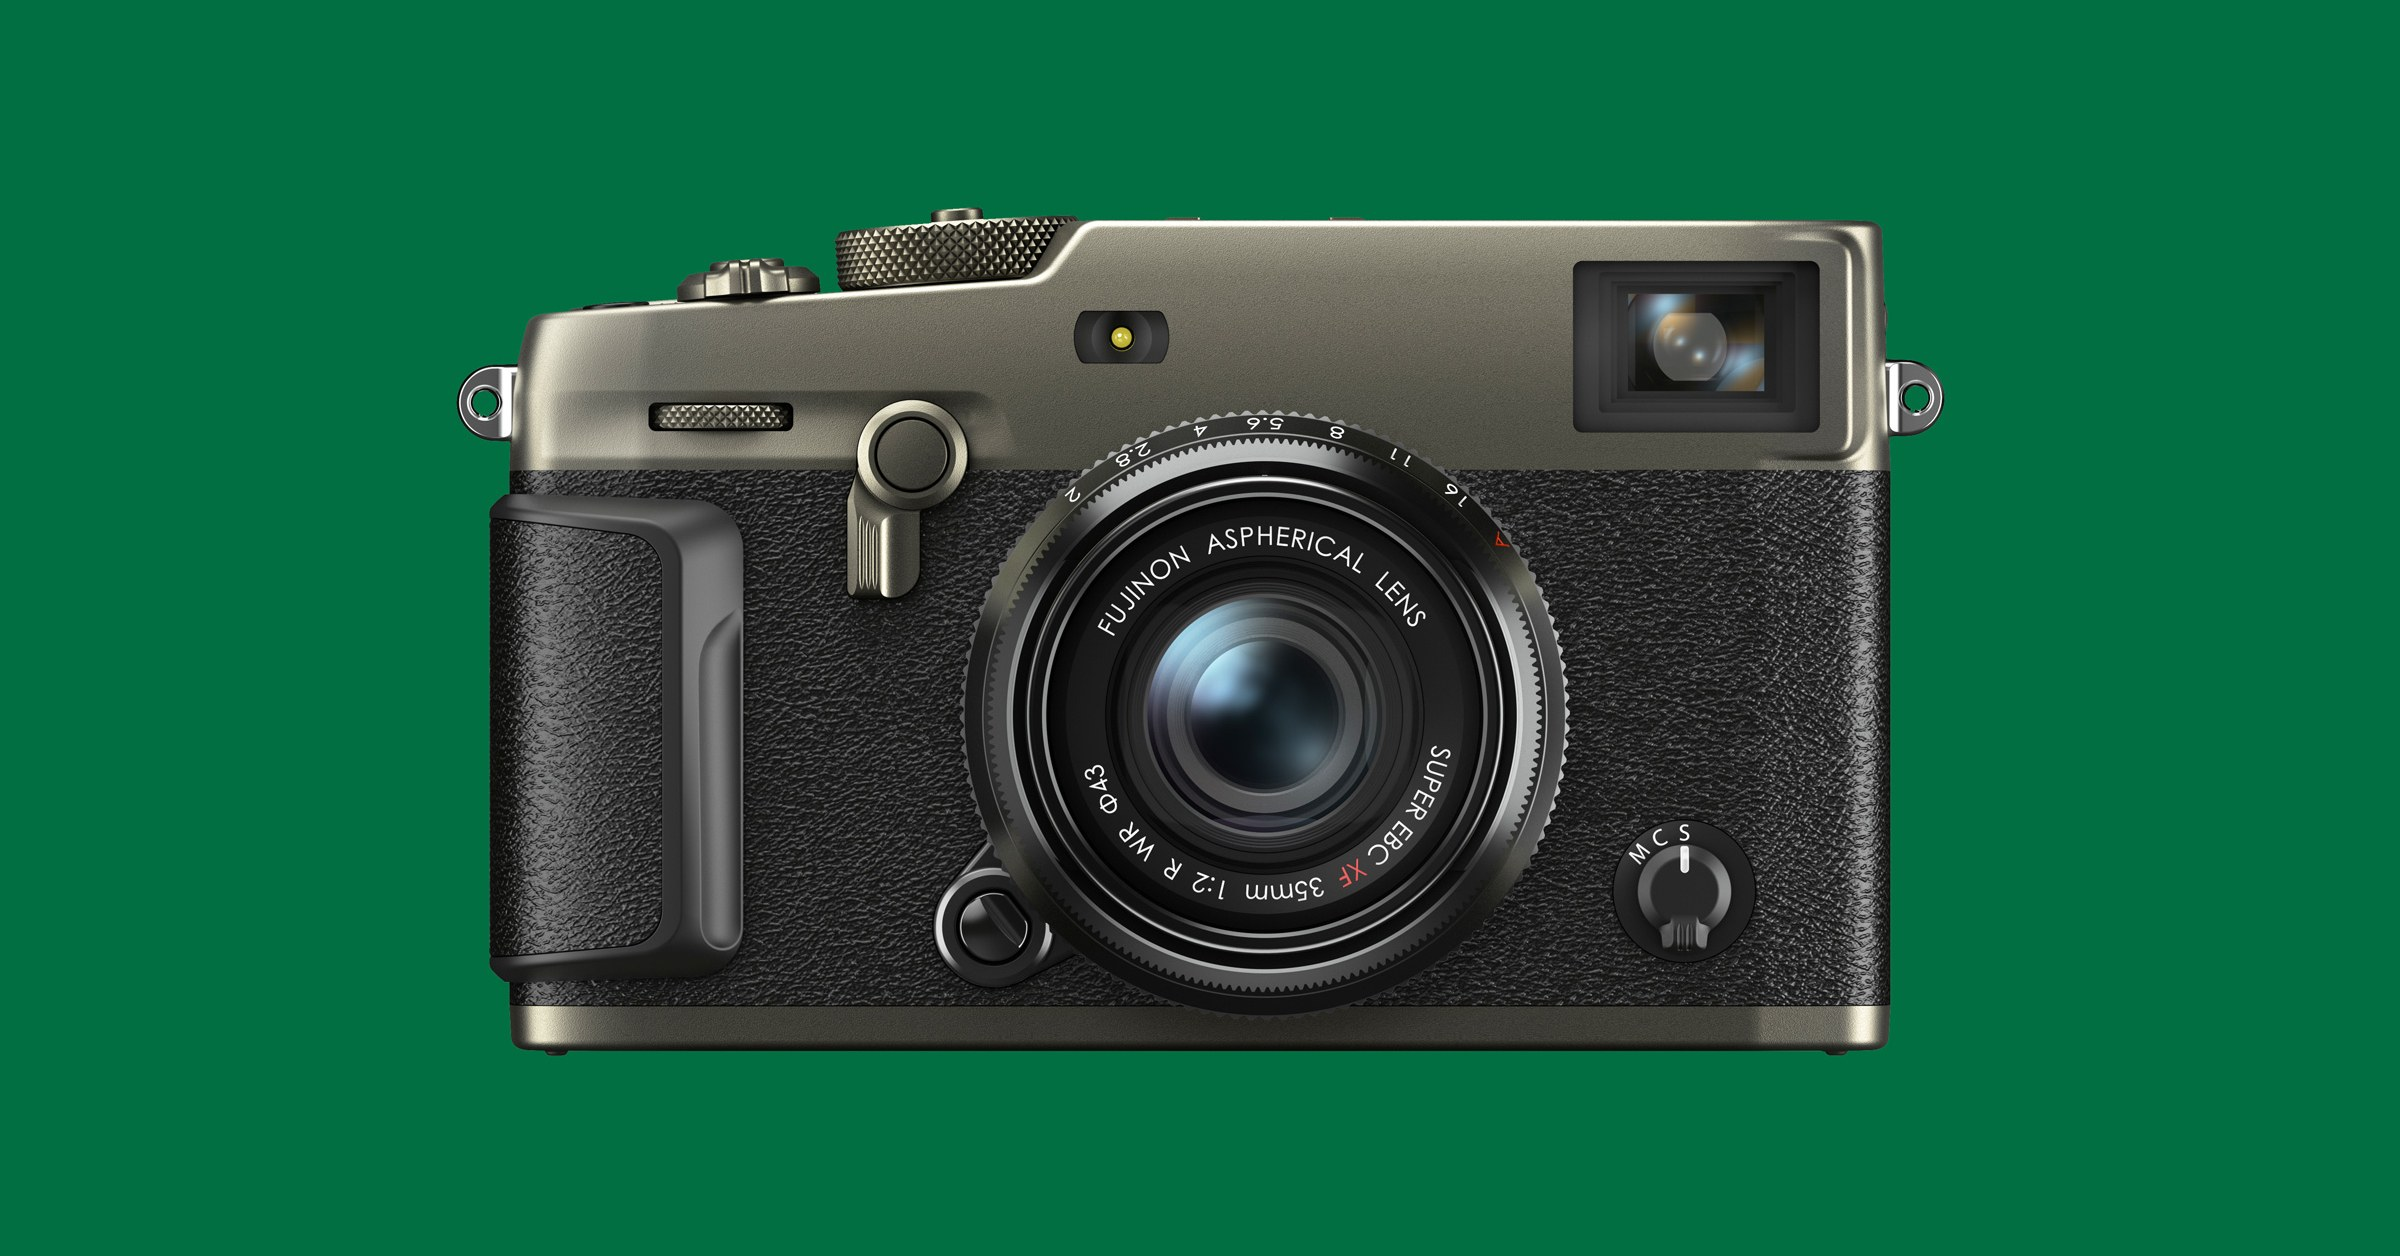 Fujifilm X-Pro3 Review: A Nod to the Era of Film Cameras